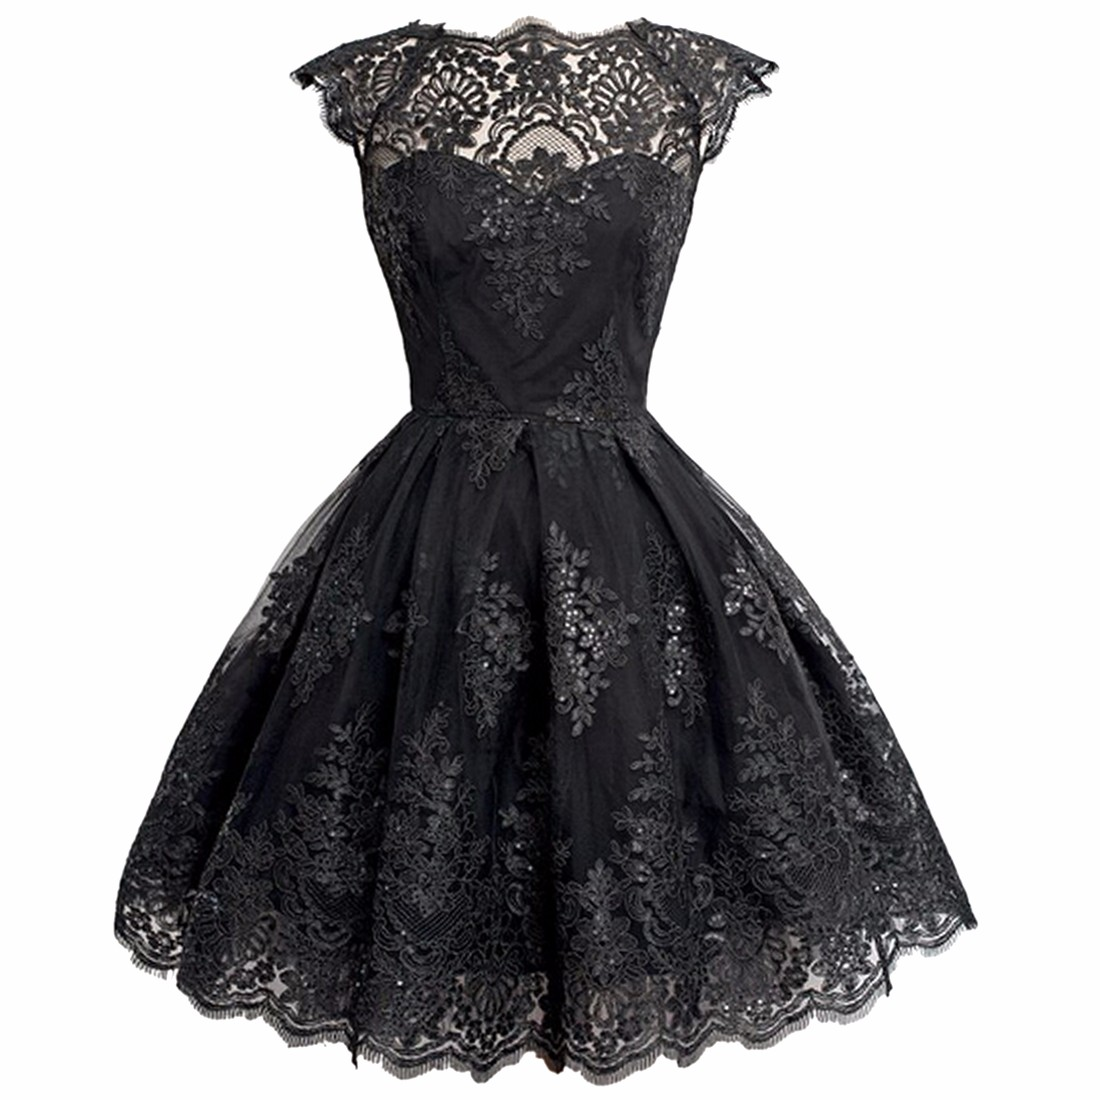 fashion tutu dress short bridesmaid lace evening dress cocktail prom party ebay. Black Bedroom Furniture Sets. Home Design Ideas